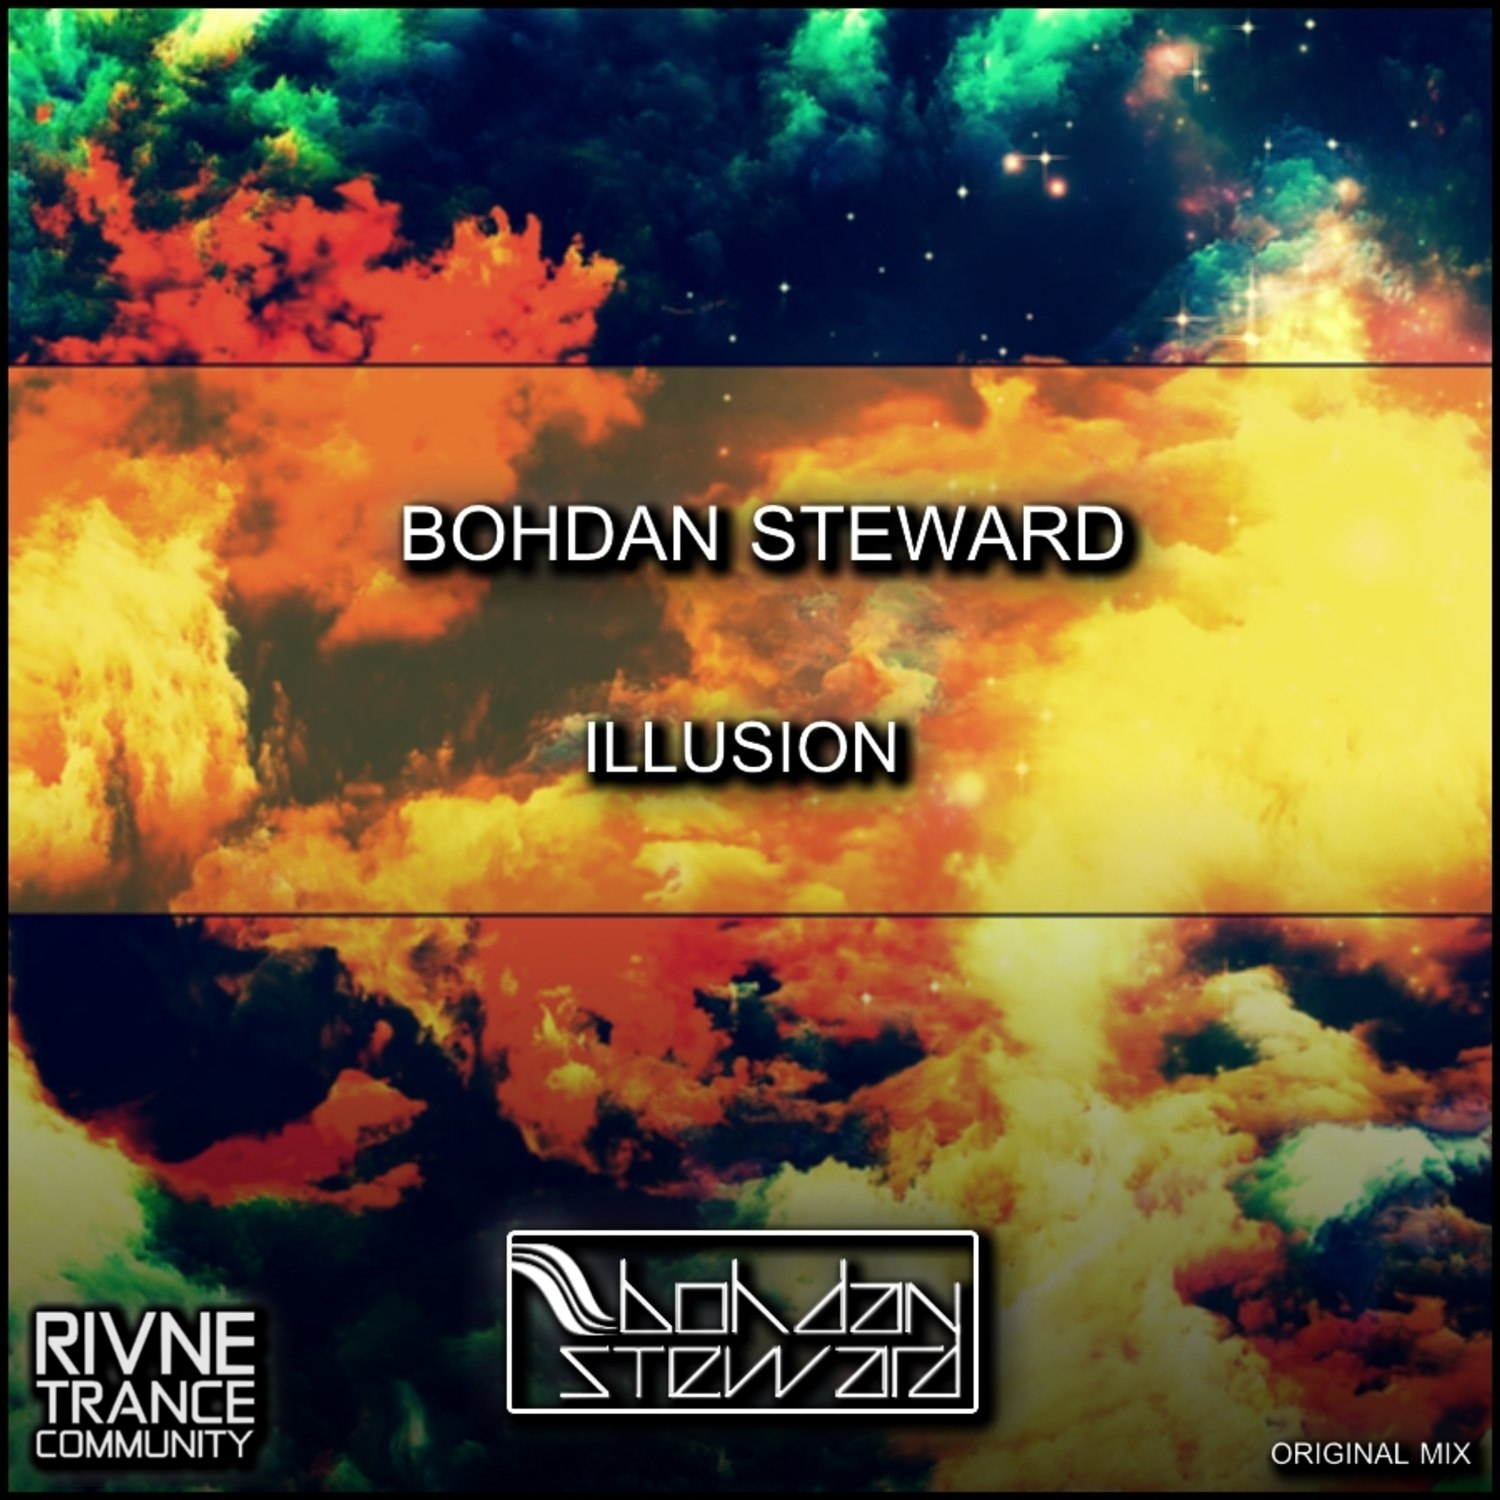 Bohdan Steward - Illusion (Original Mix)